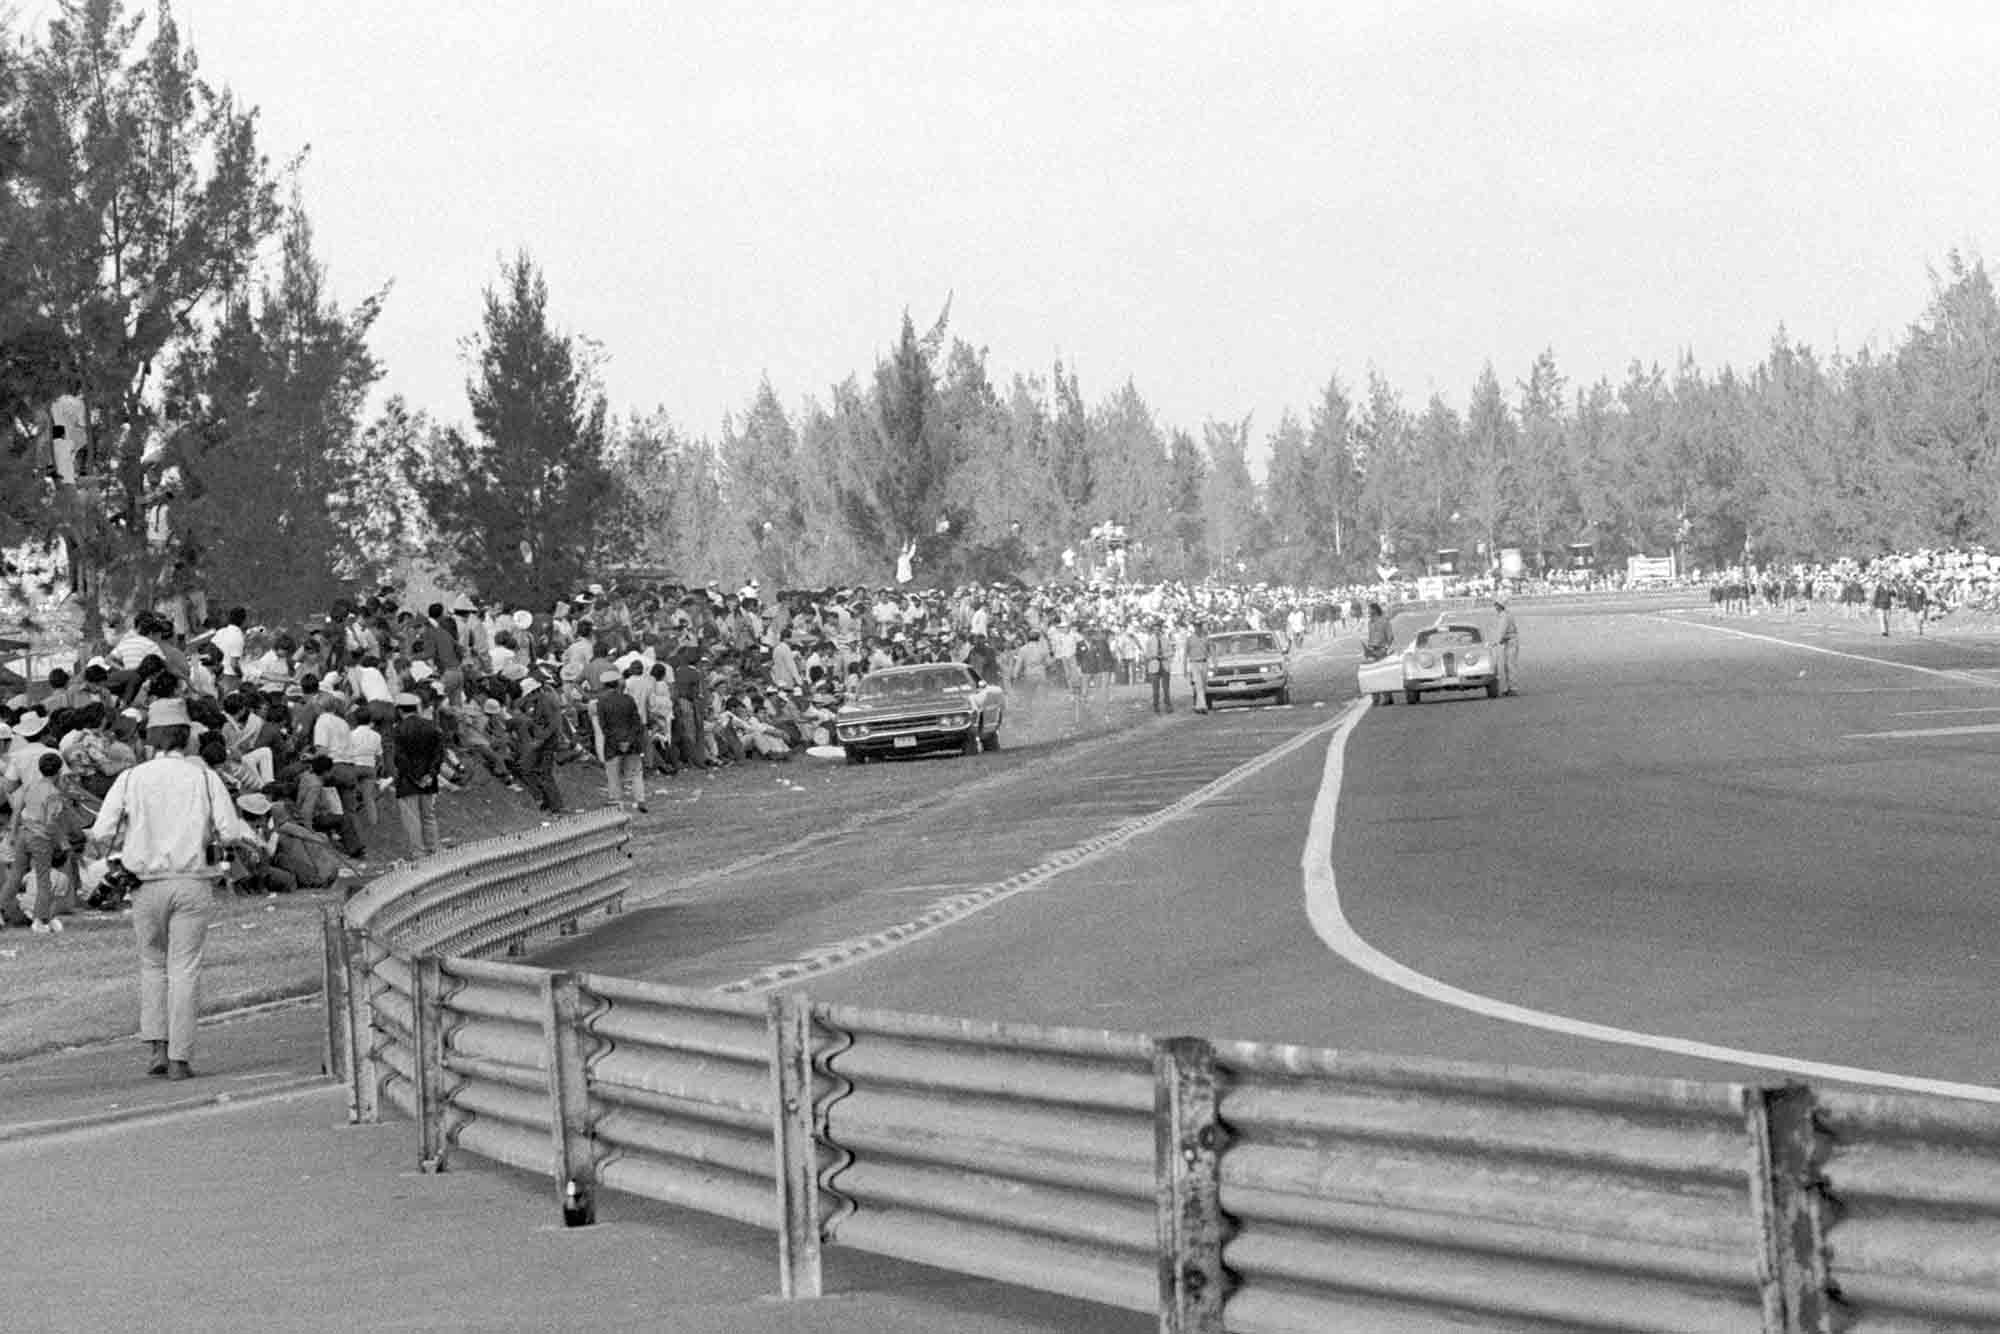 Drivers implore crowds to step back before start fo 1970 Mexican Grand Prix